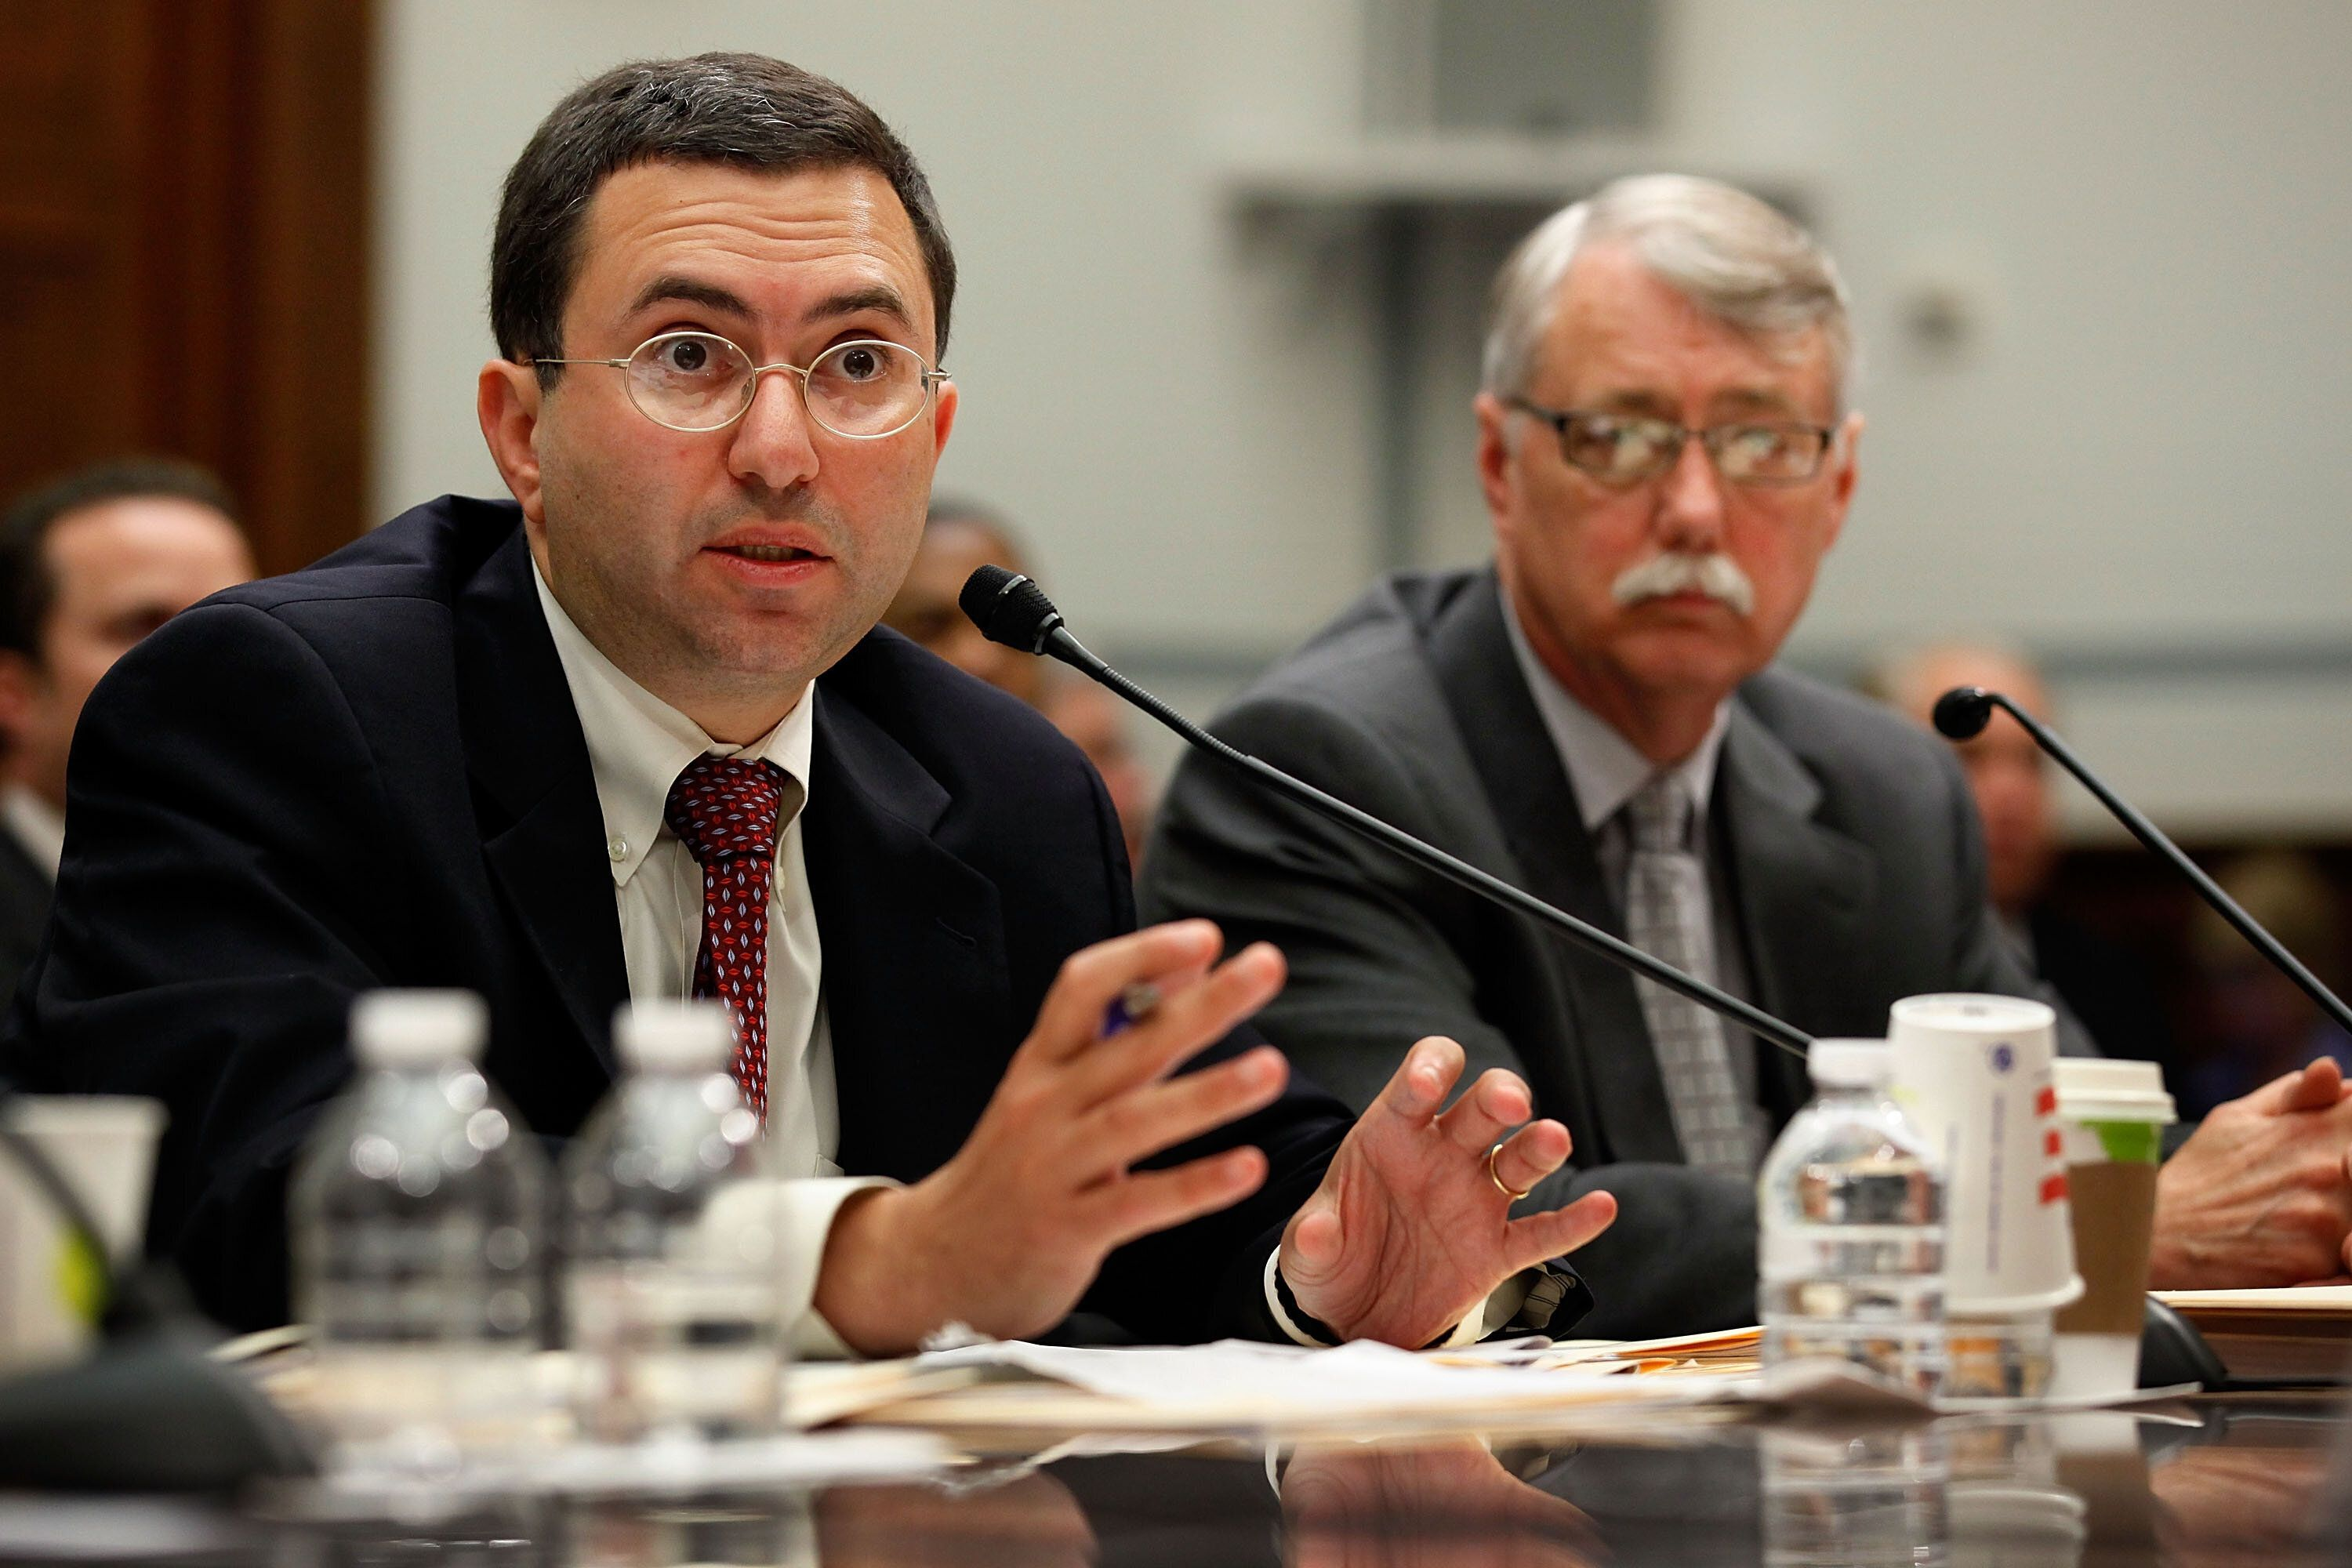 Principal Deputy Food and Drug Administration Commissioner Joshua Sharfstein (left) and Acting Associate FDA Commissioner for